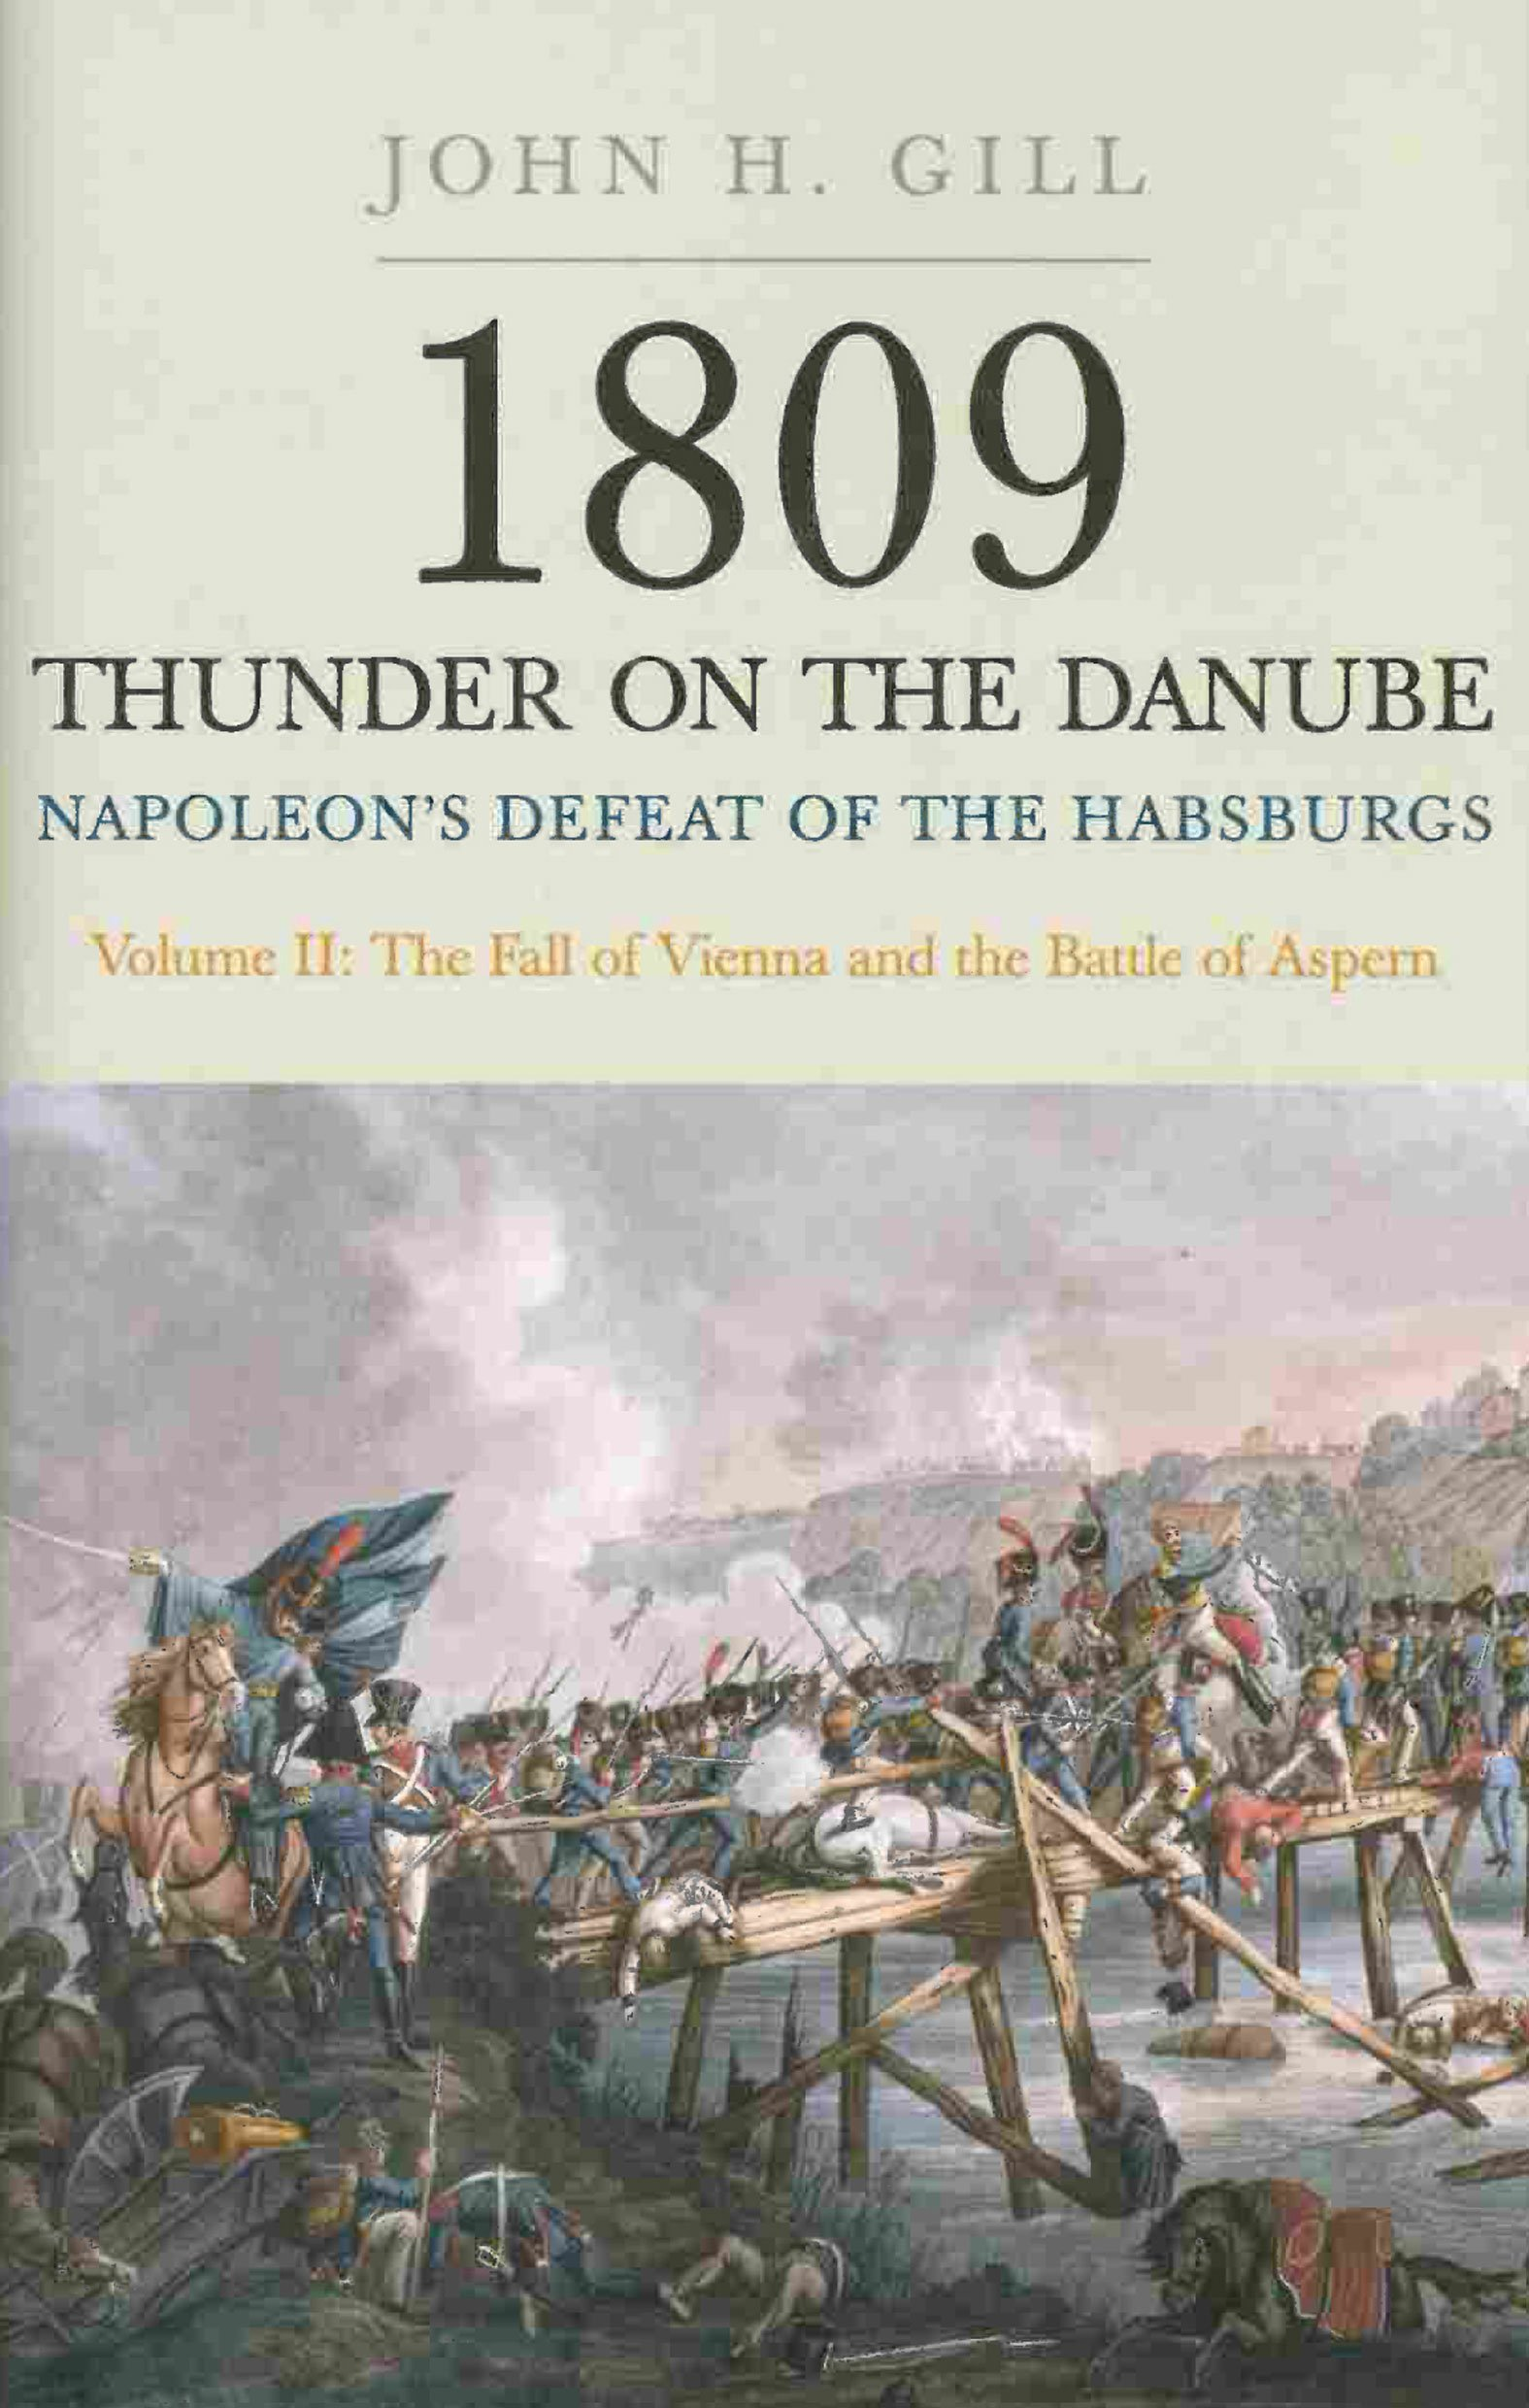 1809-thunder-on-the-danube-volume-2-napoleon-s-defeat-of-the-habsburgs-the-fall-of-vienna-and-the-battle-of-aspern